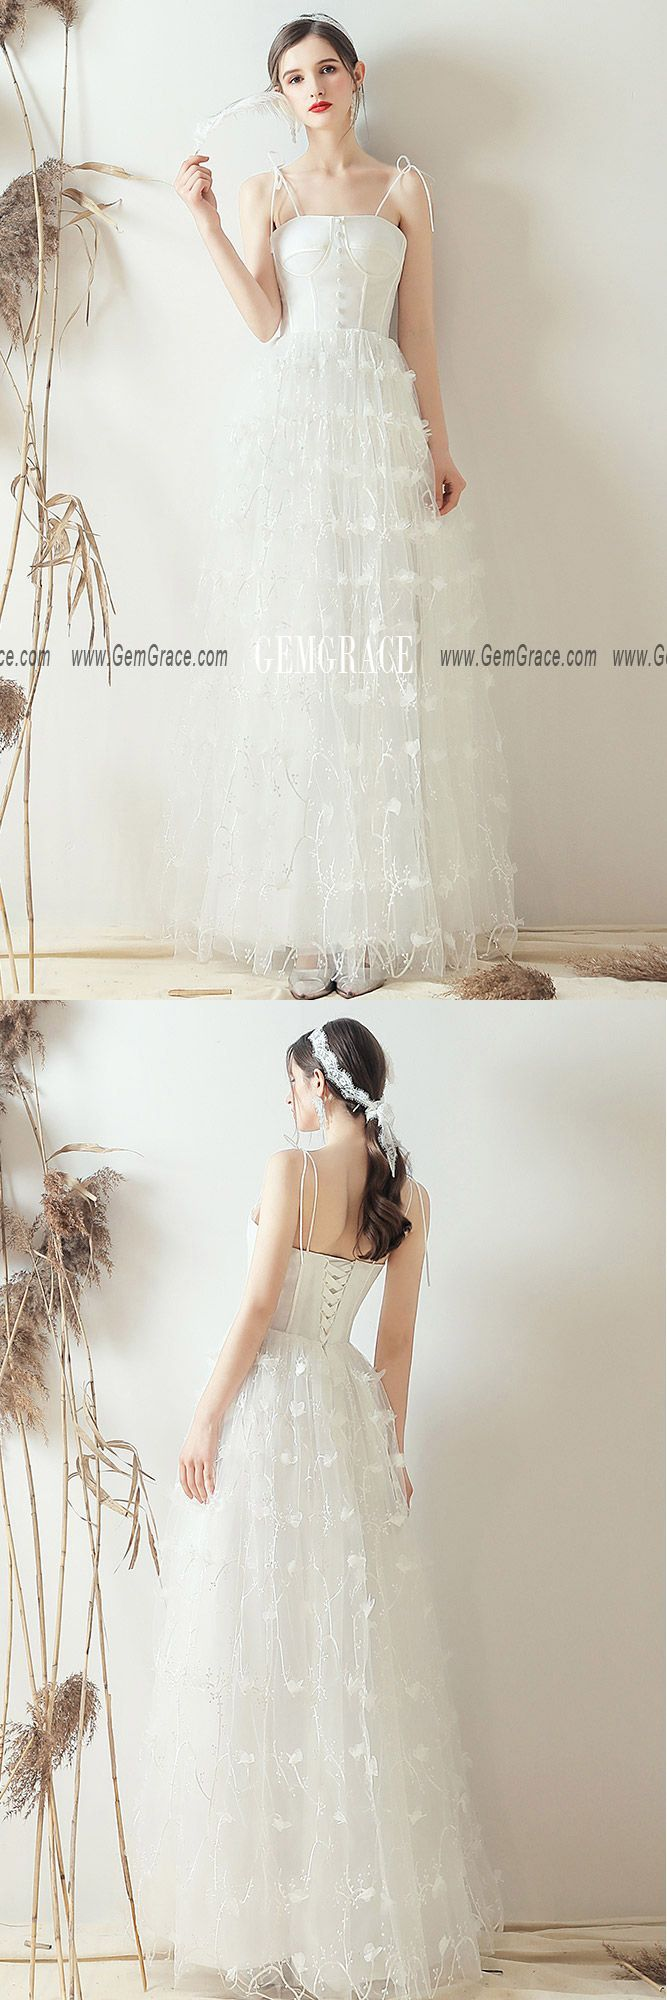 Lovely Beaded Flowers Retro Corset Top Wedding Dress With